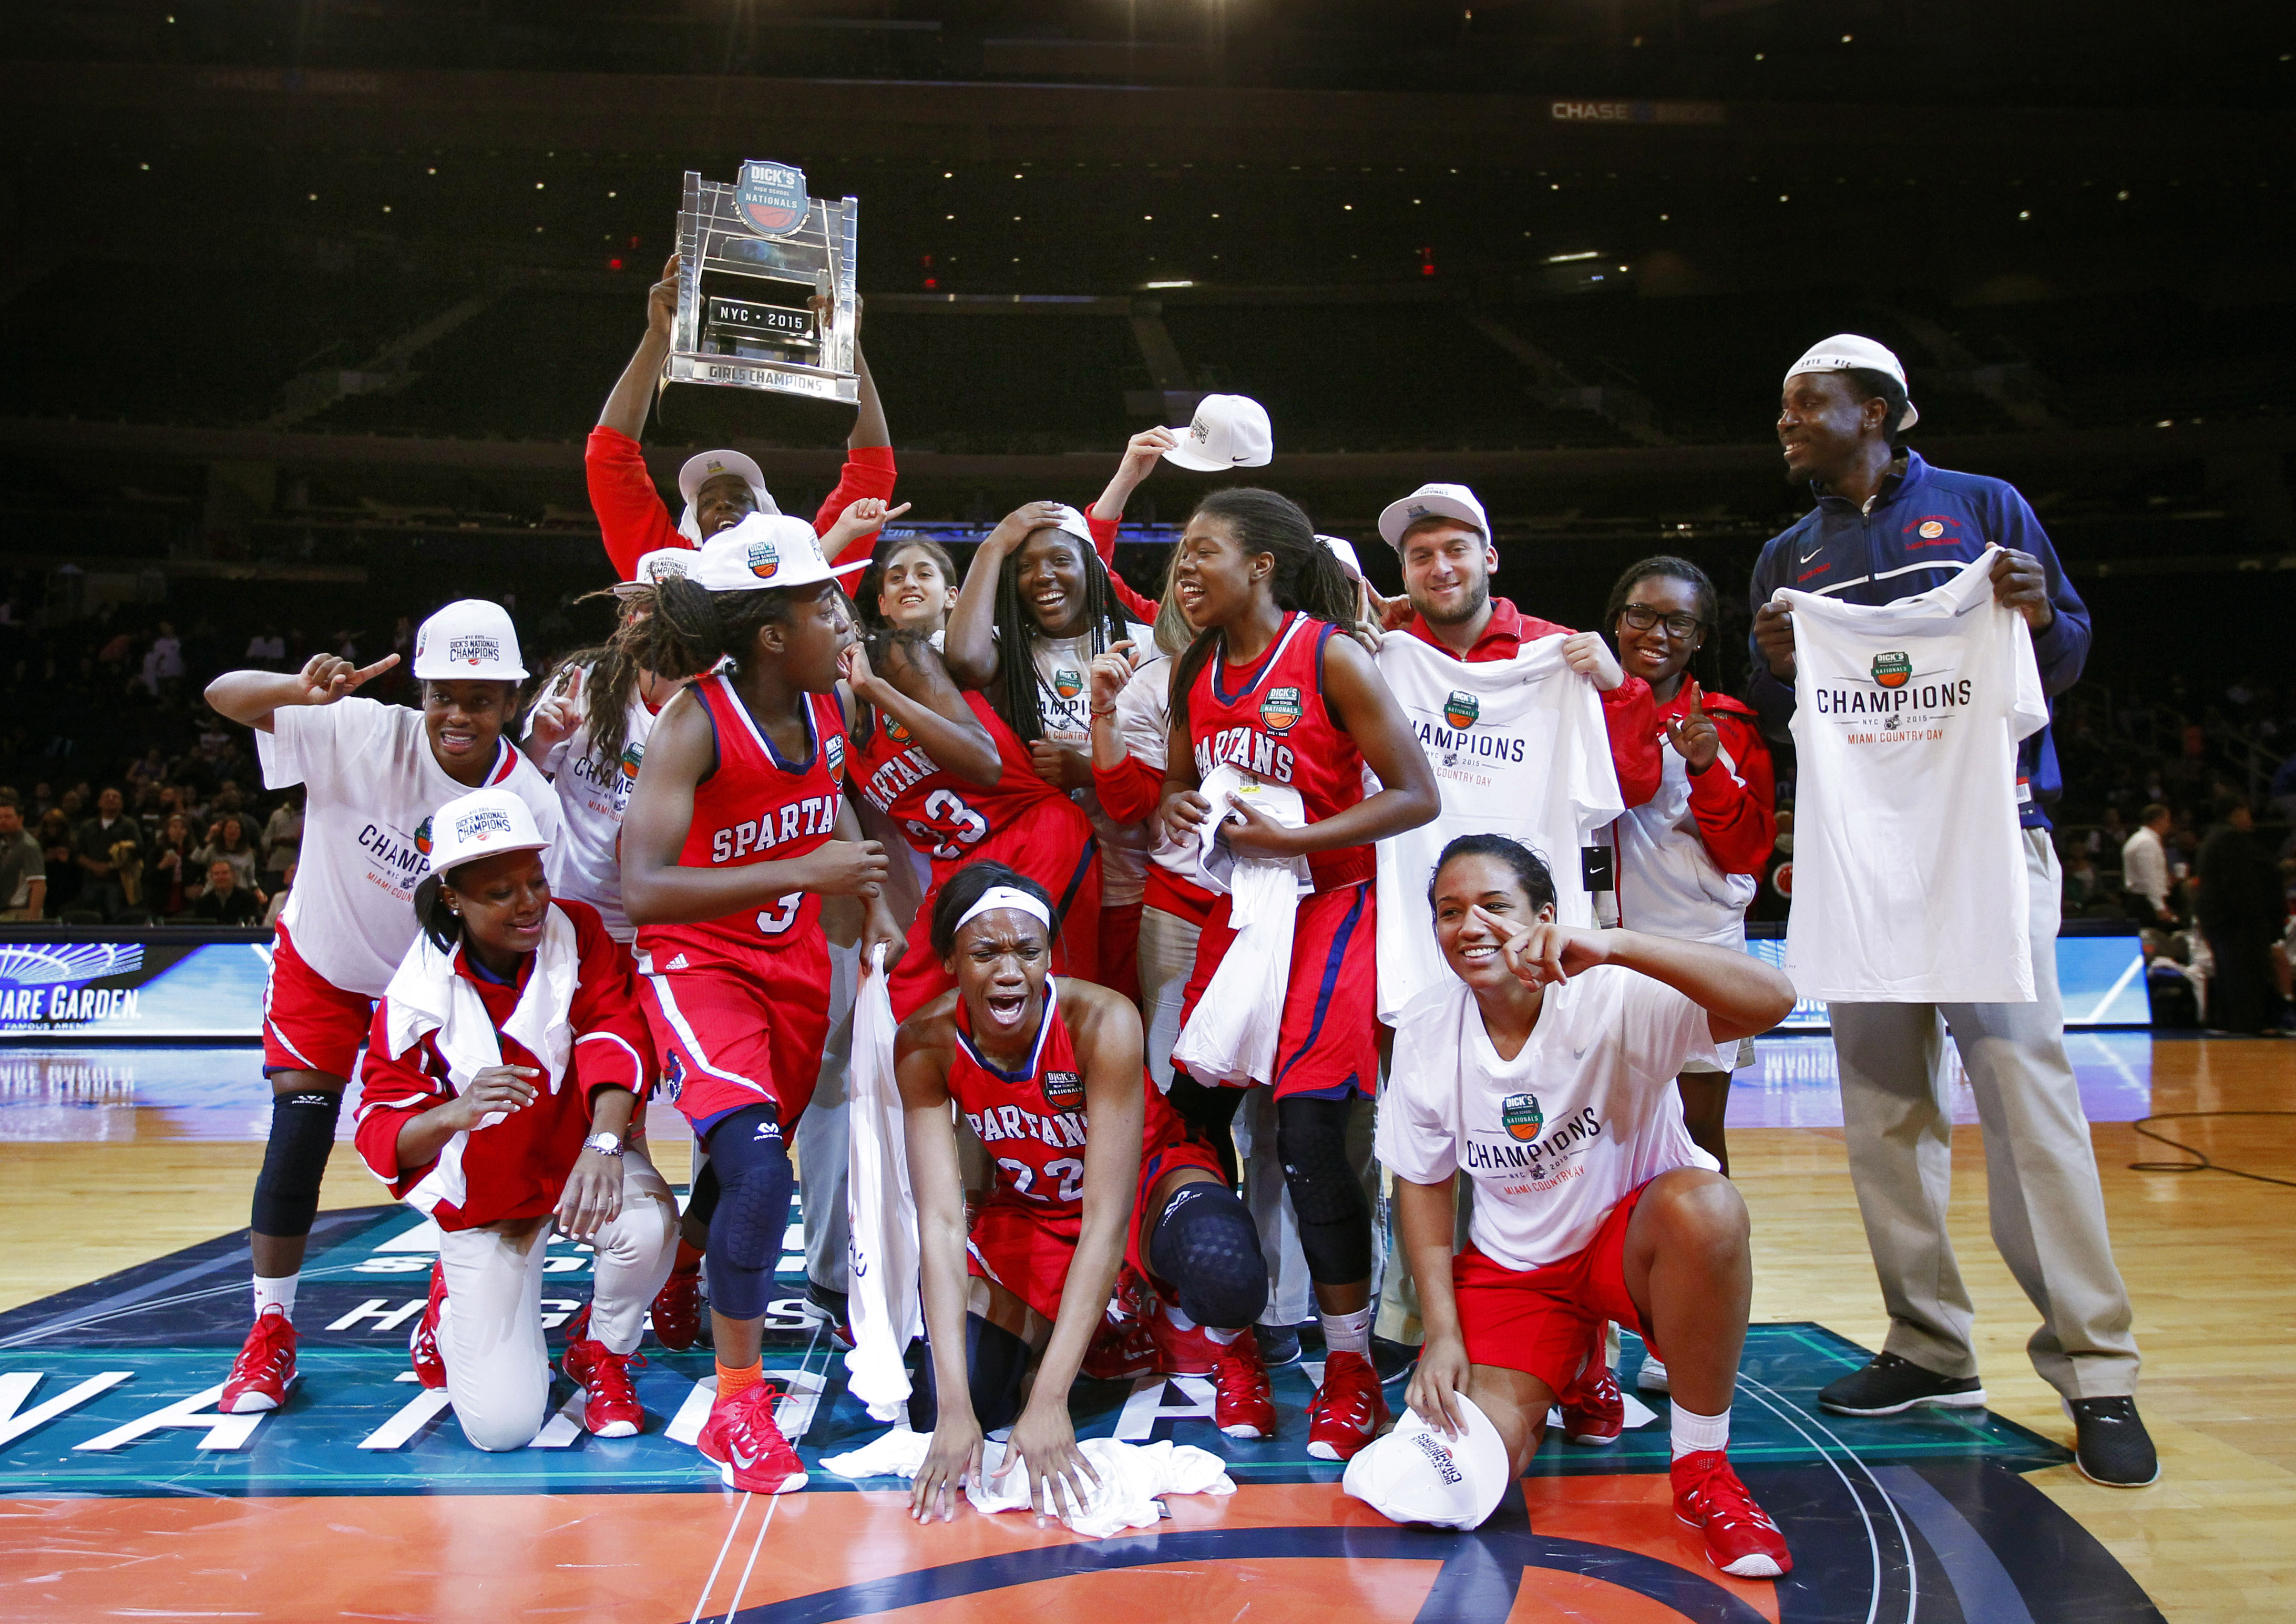 Miami Country Day School earned the DICK'S Nationals title with a victory against fellow Florida squad Dillard. (Photo: Andy Marlin, USA TODAY Sports)